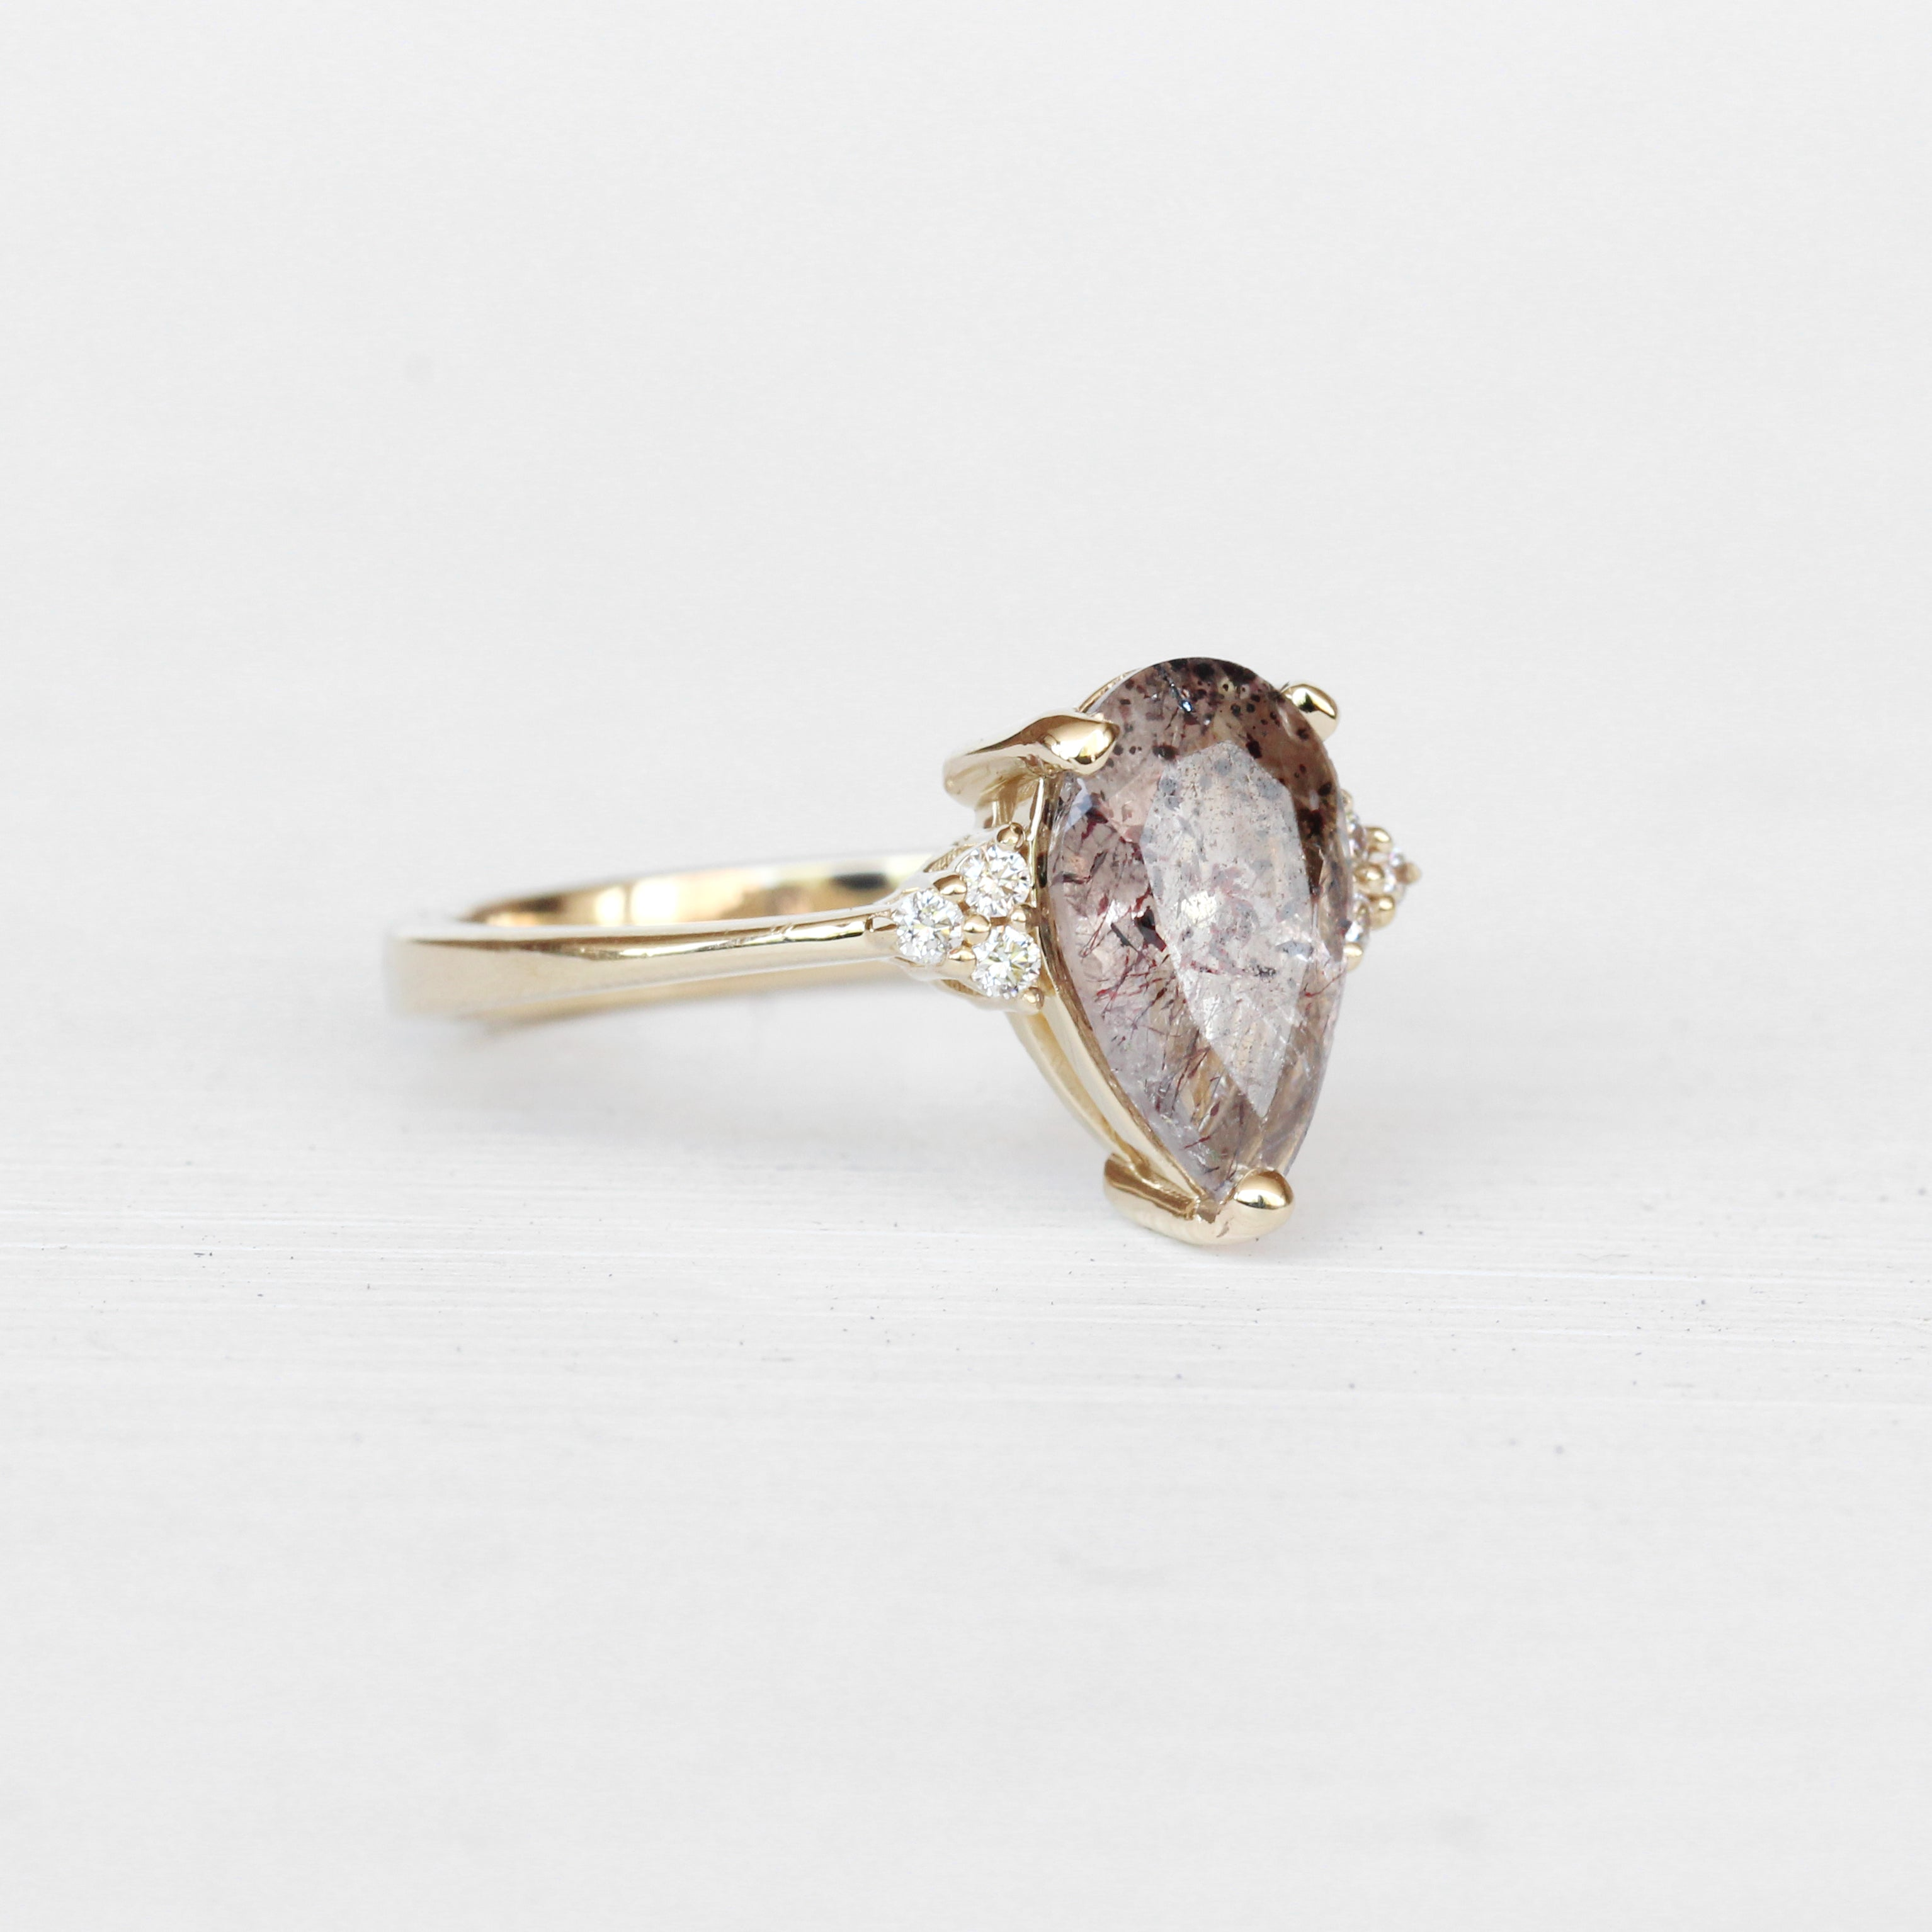 Imogene Ring with Quartz and Diamonds in 14k Yellow Gold - Ready to Size and Ship - Celestial Diamonds ® by Midwinter Co.